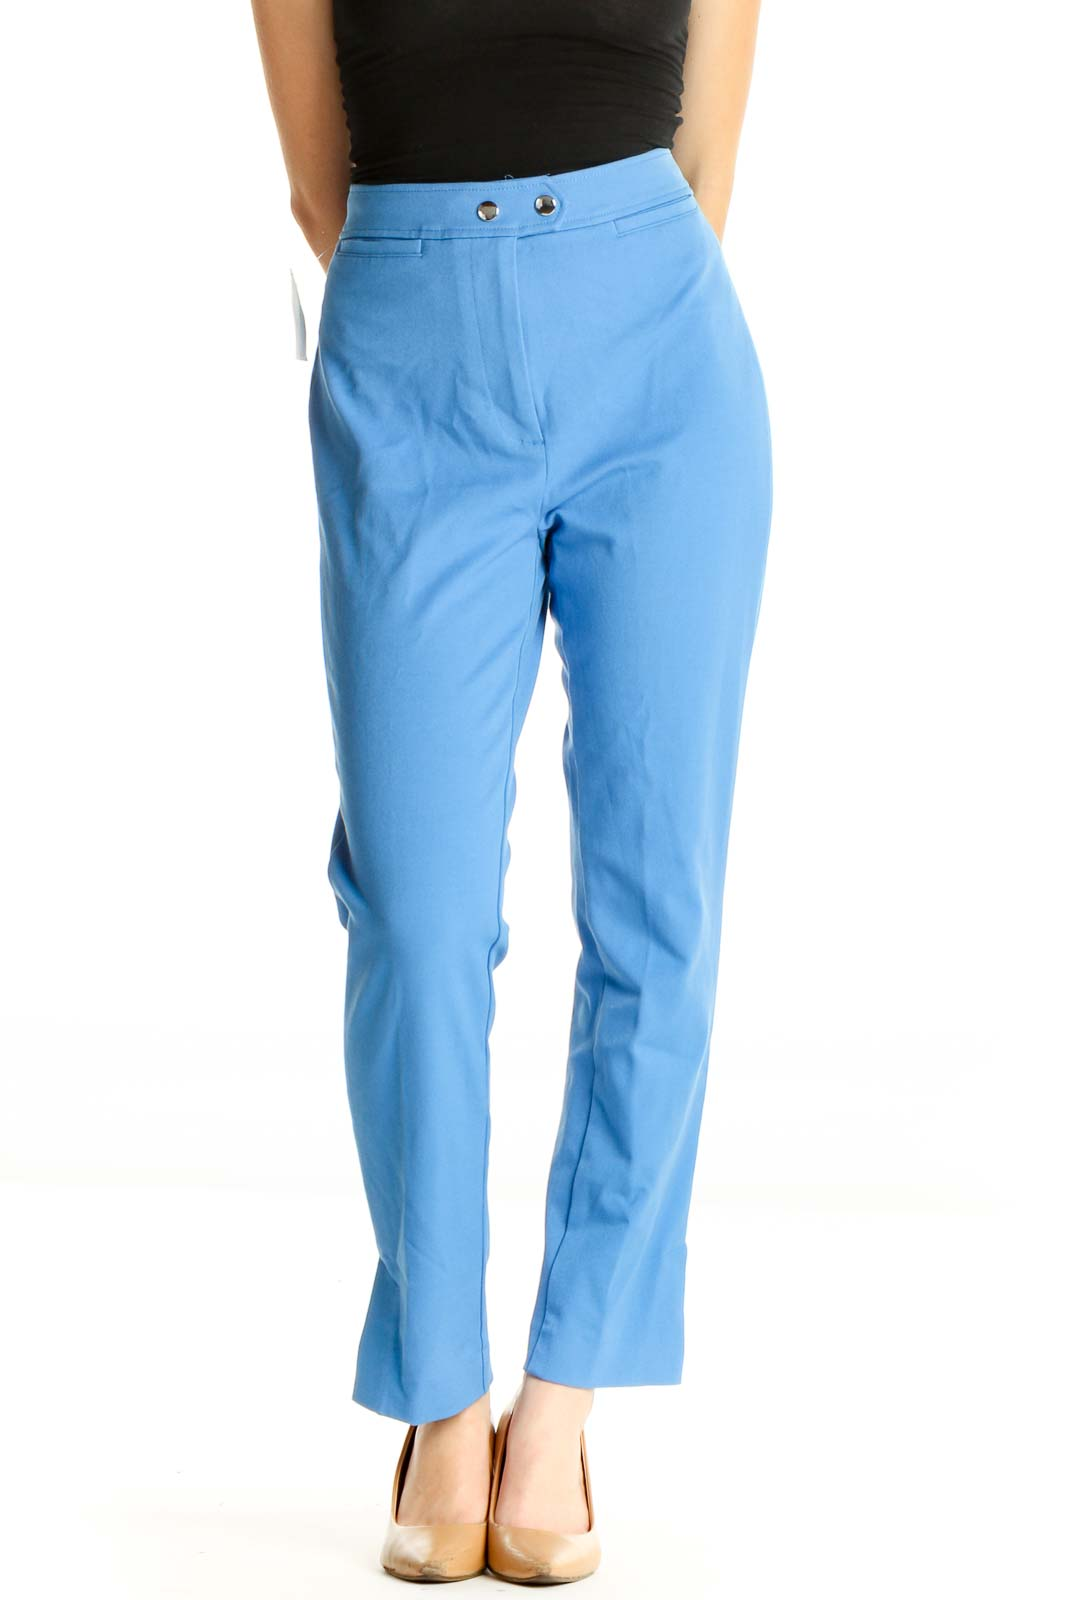 Blue Solid Casual Trousers Front